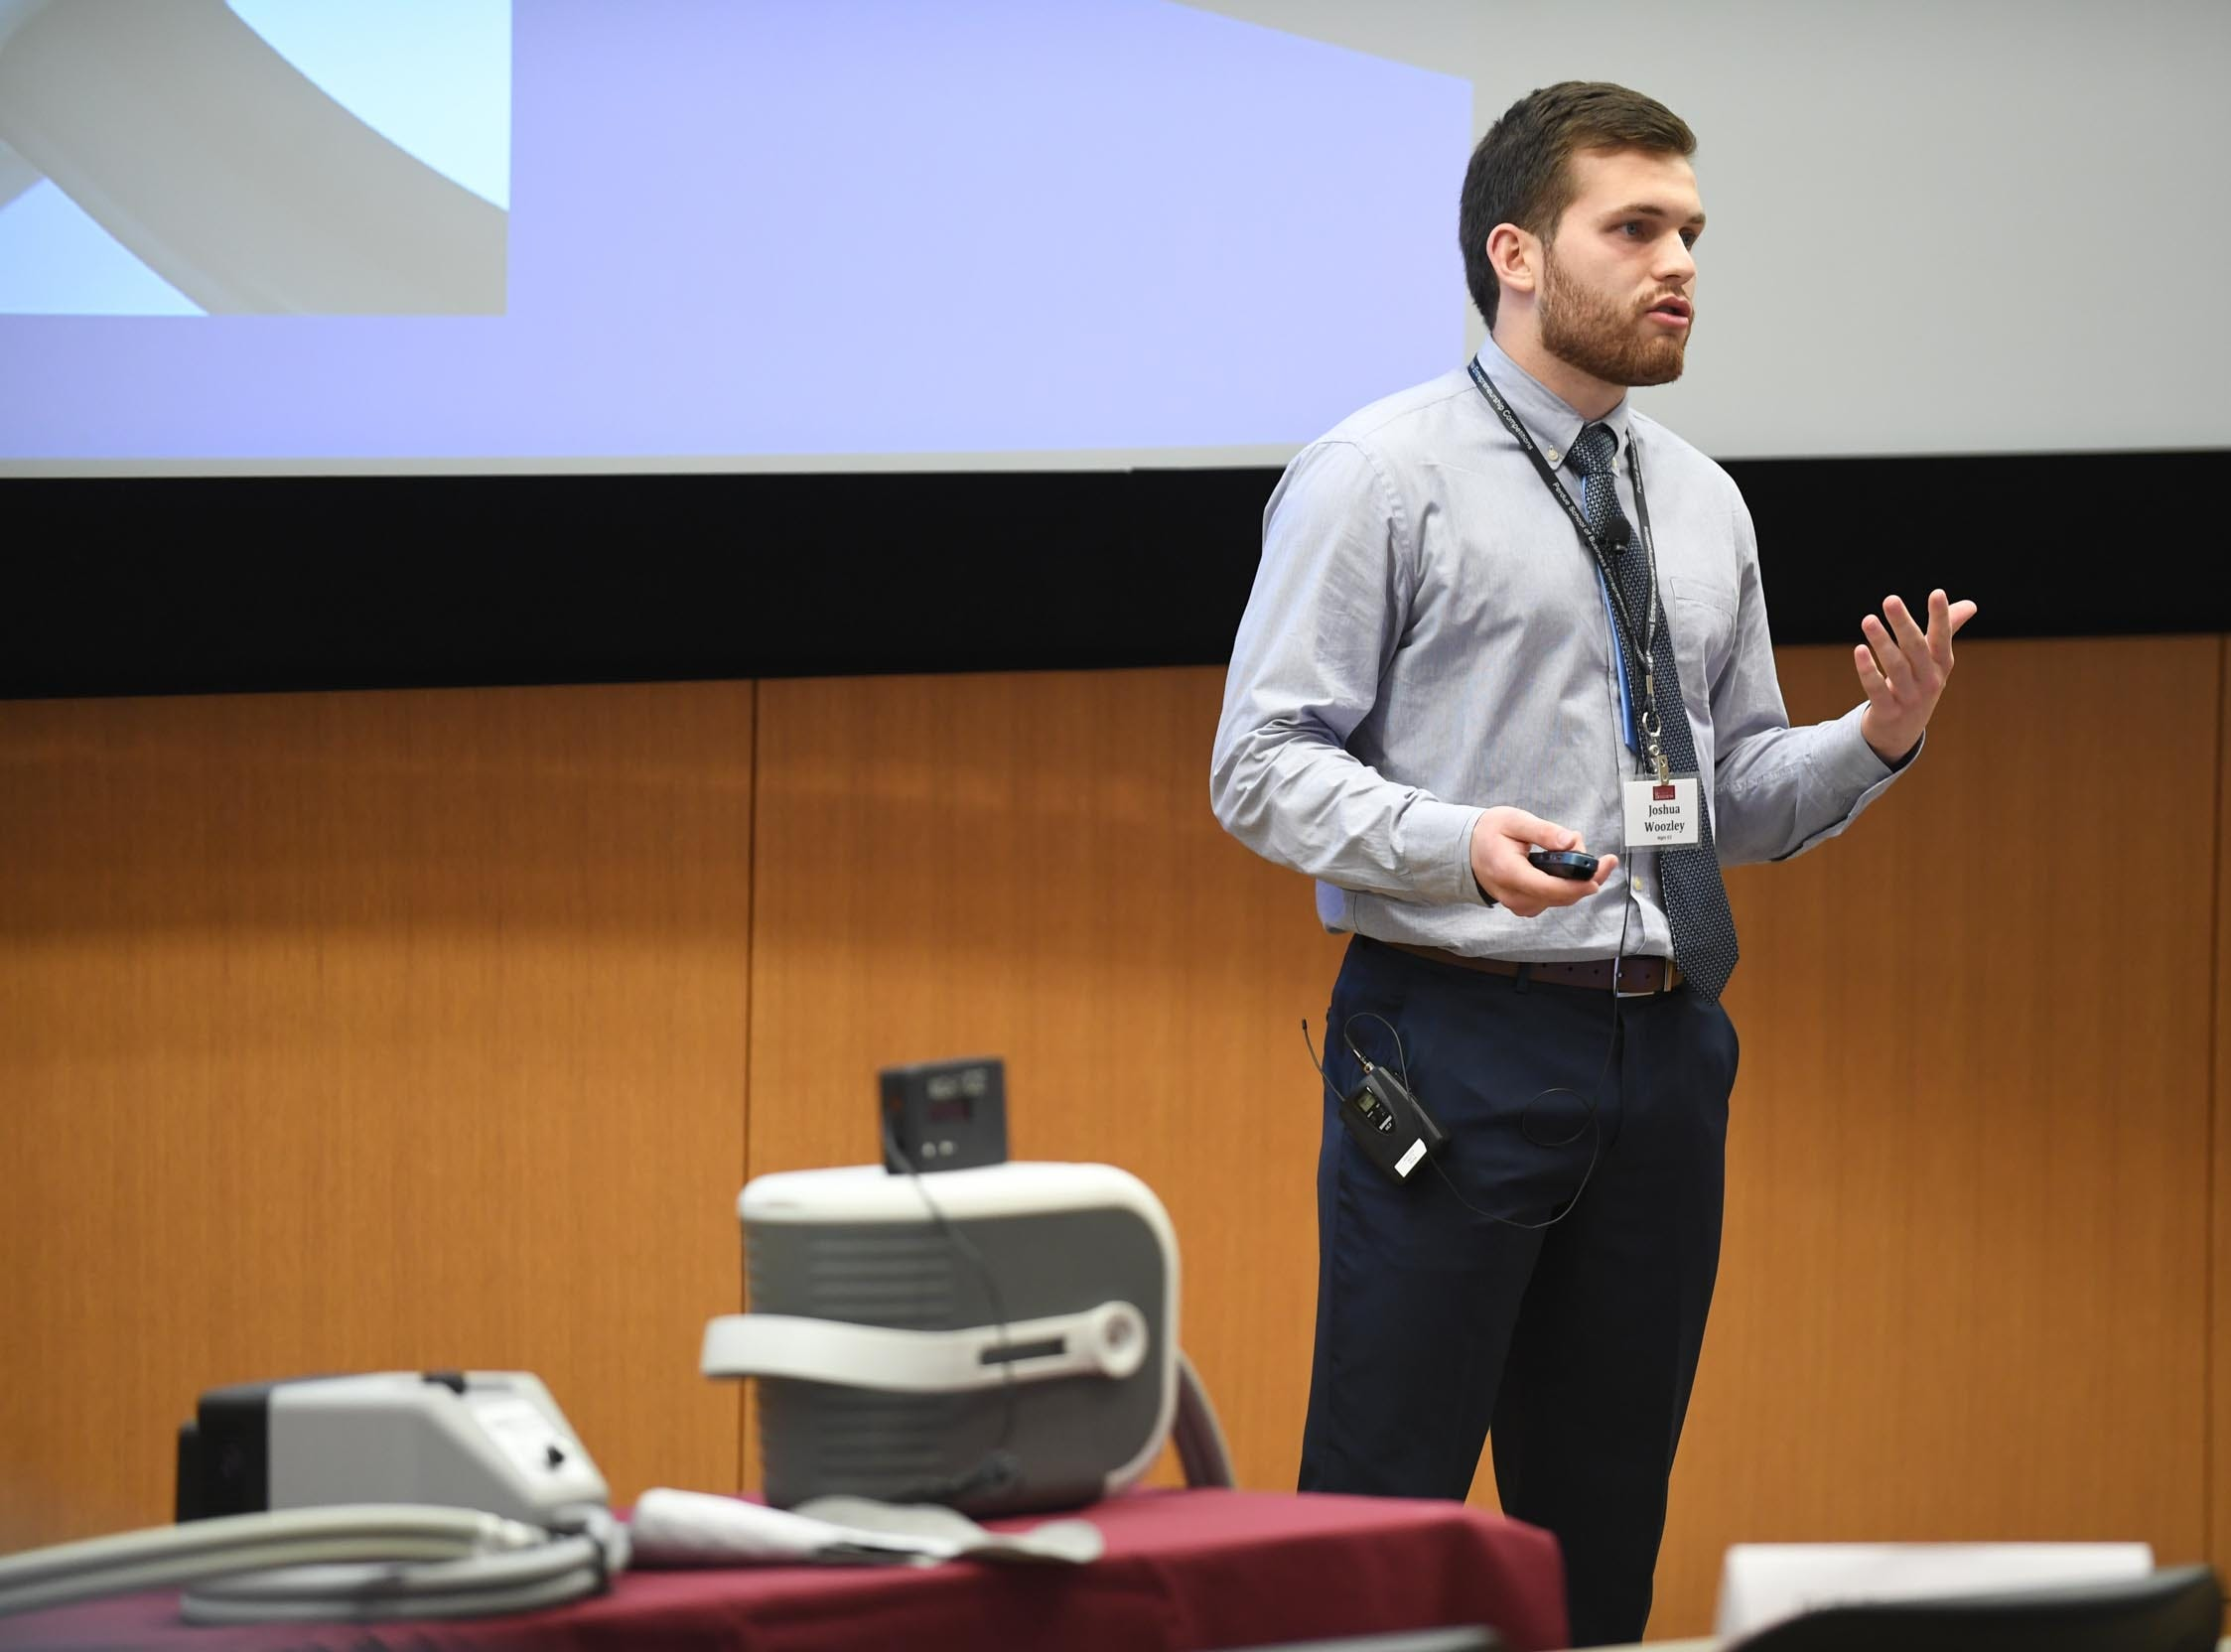 Salisbury University Student, Joshua Woozley, presents his invention the NightICE to a group of judges during the Franklin P. Perdue School of Business annual Entrepreneurship Competitions on Thursday, May 2, 2019.